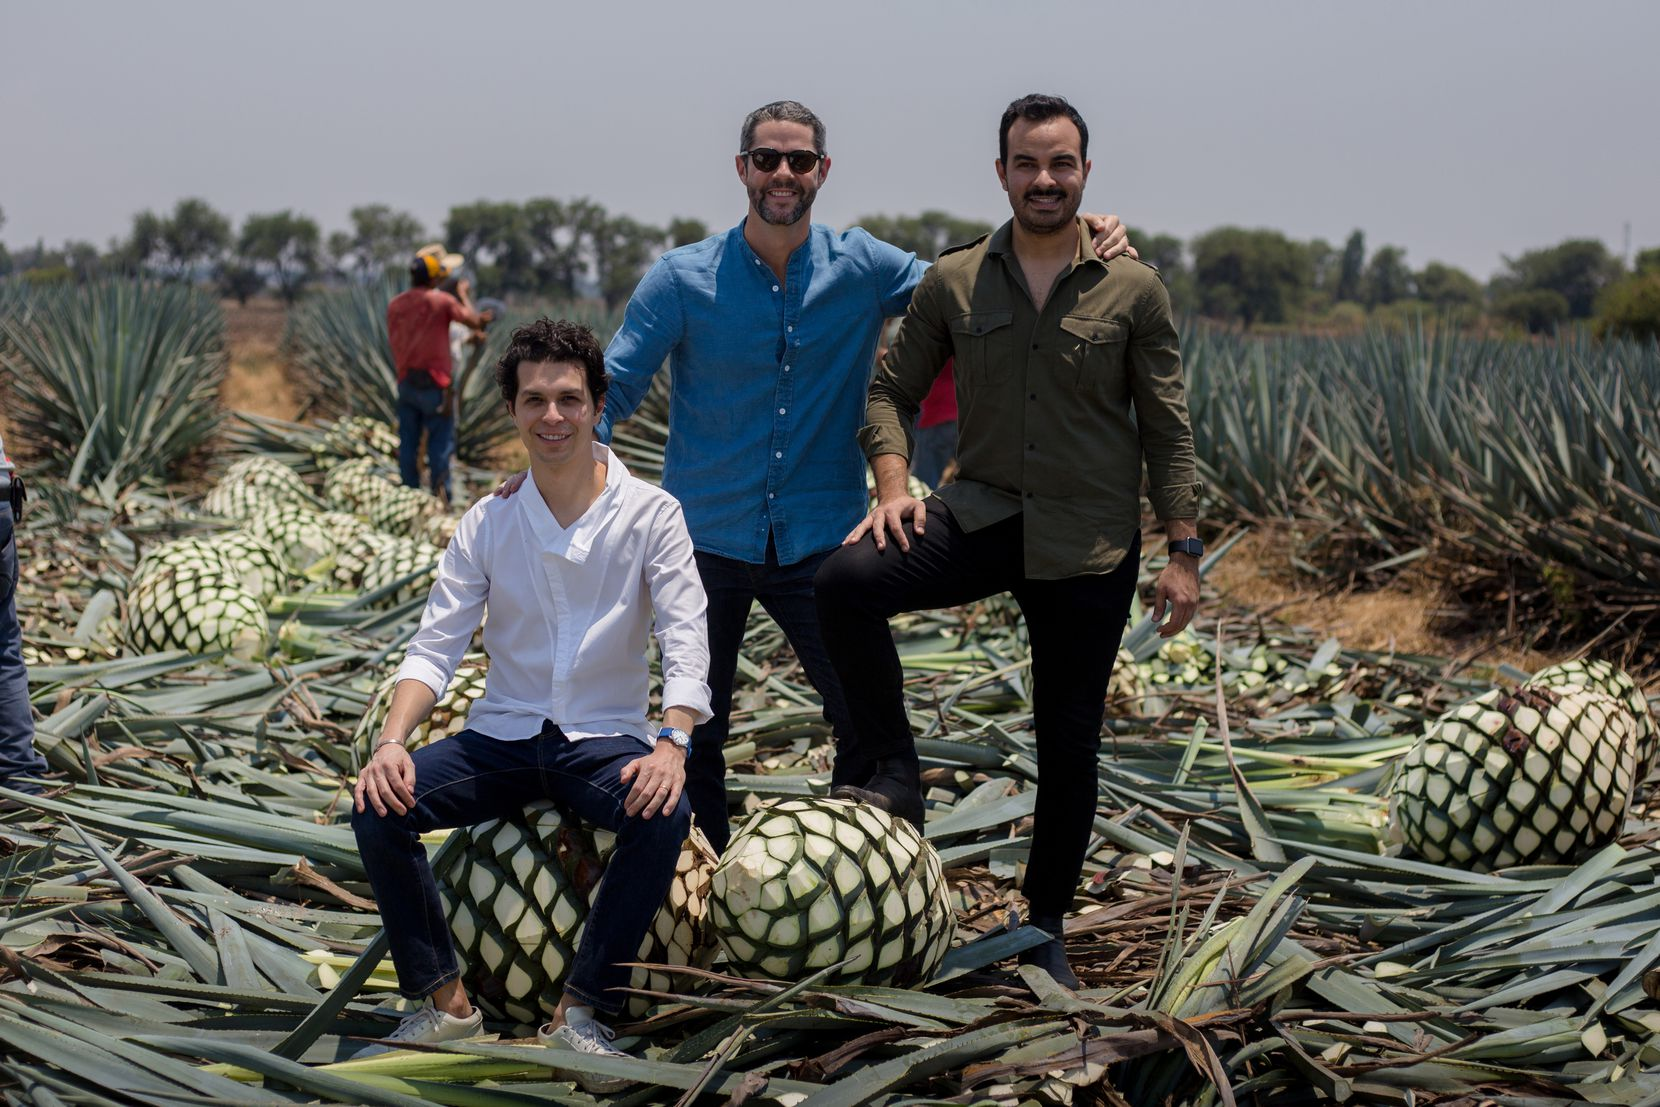 """From left to right: David Carballido, Jim McDermott and David """"Lalo"""" González stand in an agave field in the Jaliscan Highlands."""